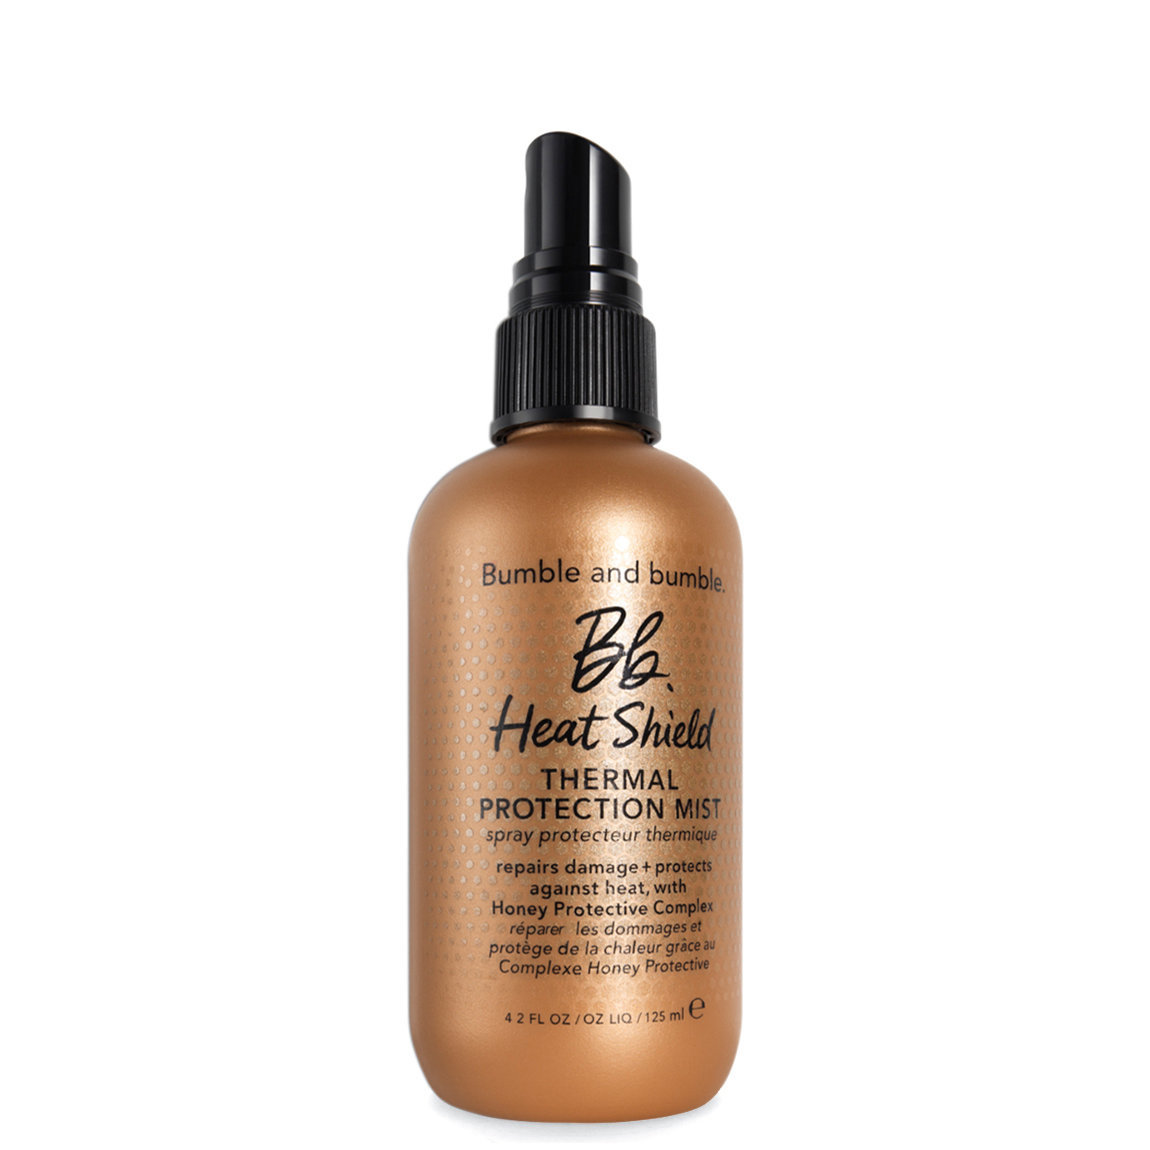 Bumble and bumble. Heat Shield Thermal Protection Mist 4.2 oz alternative view 1 - product swatch.